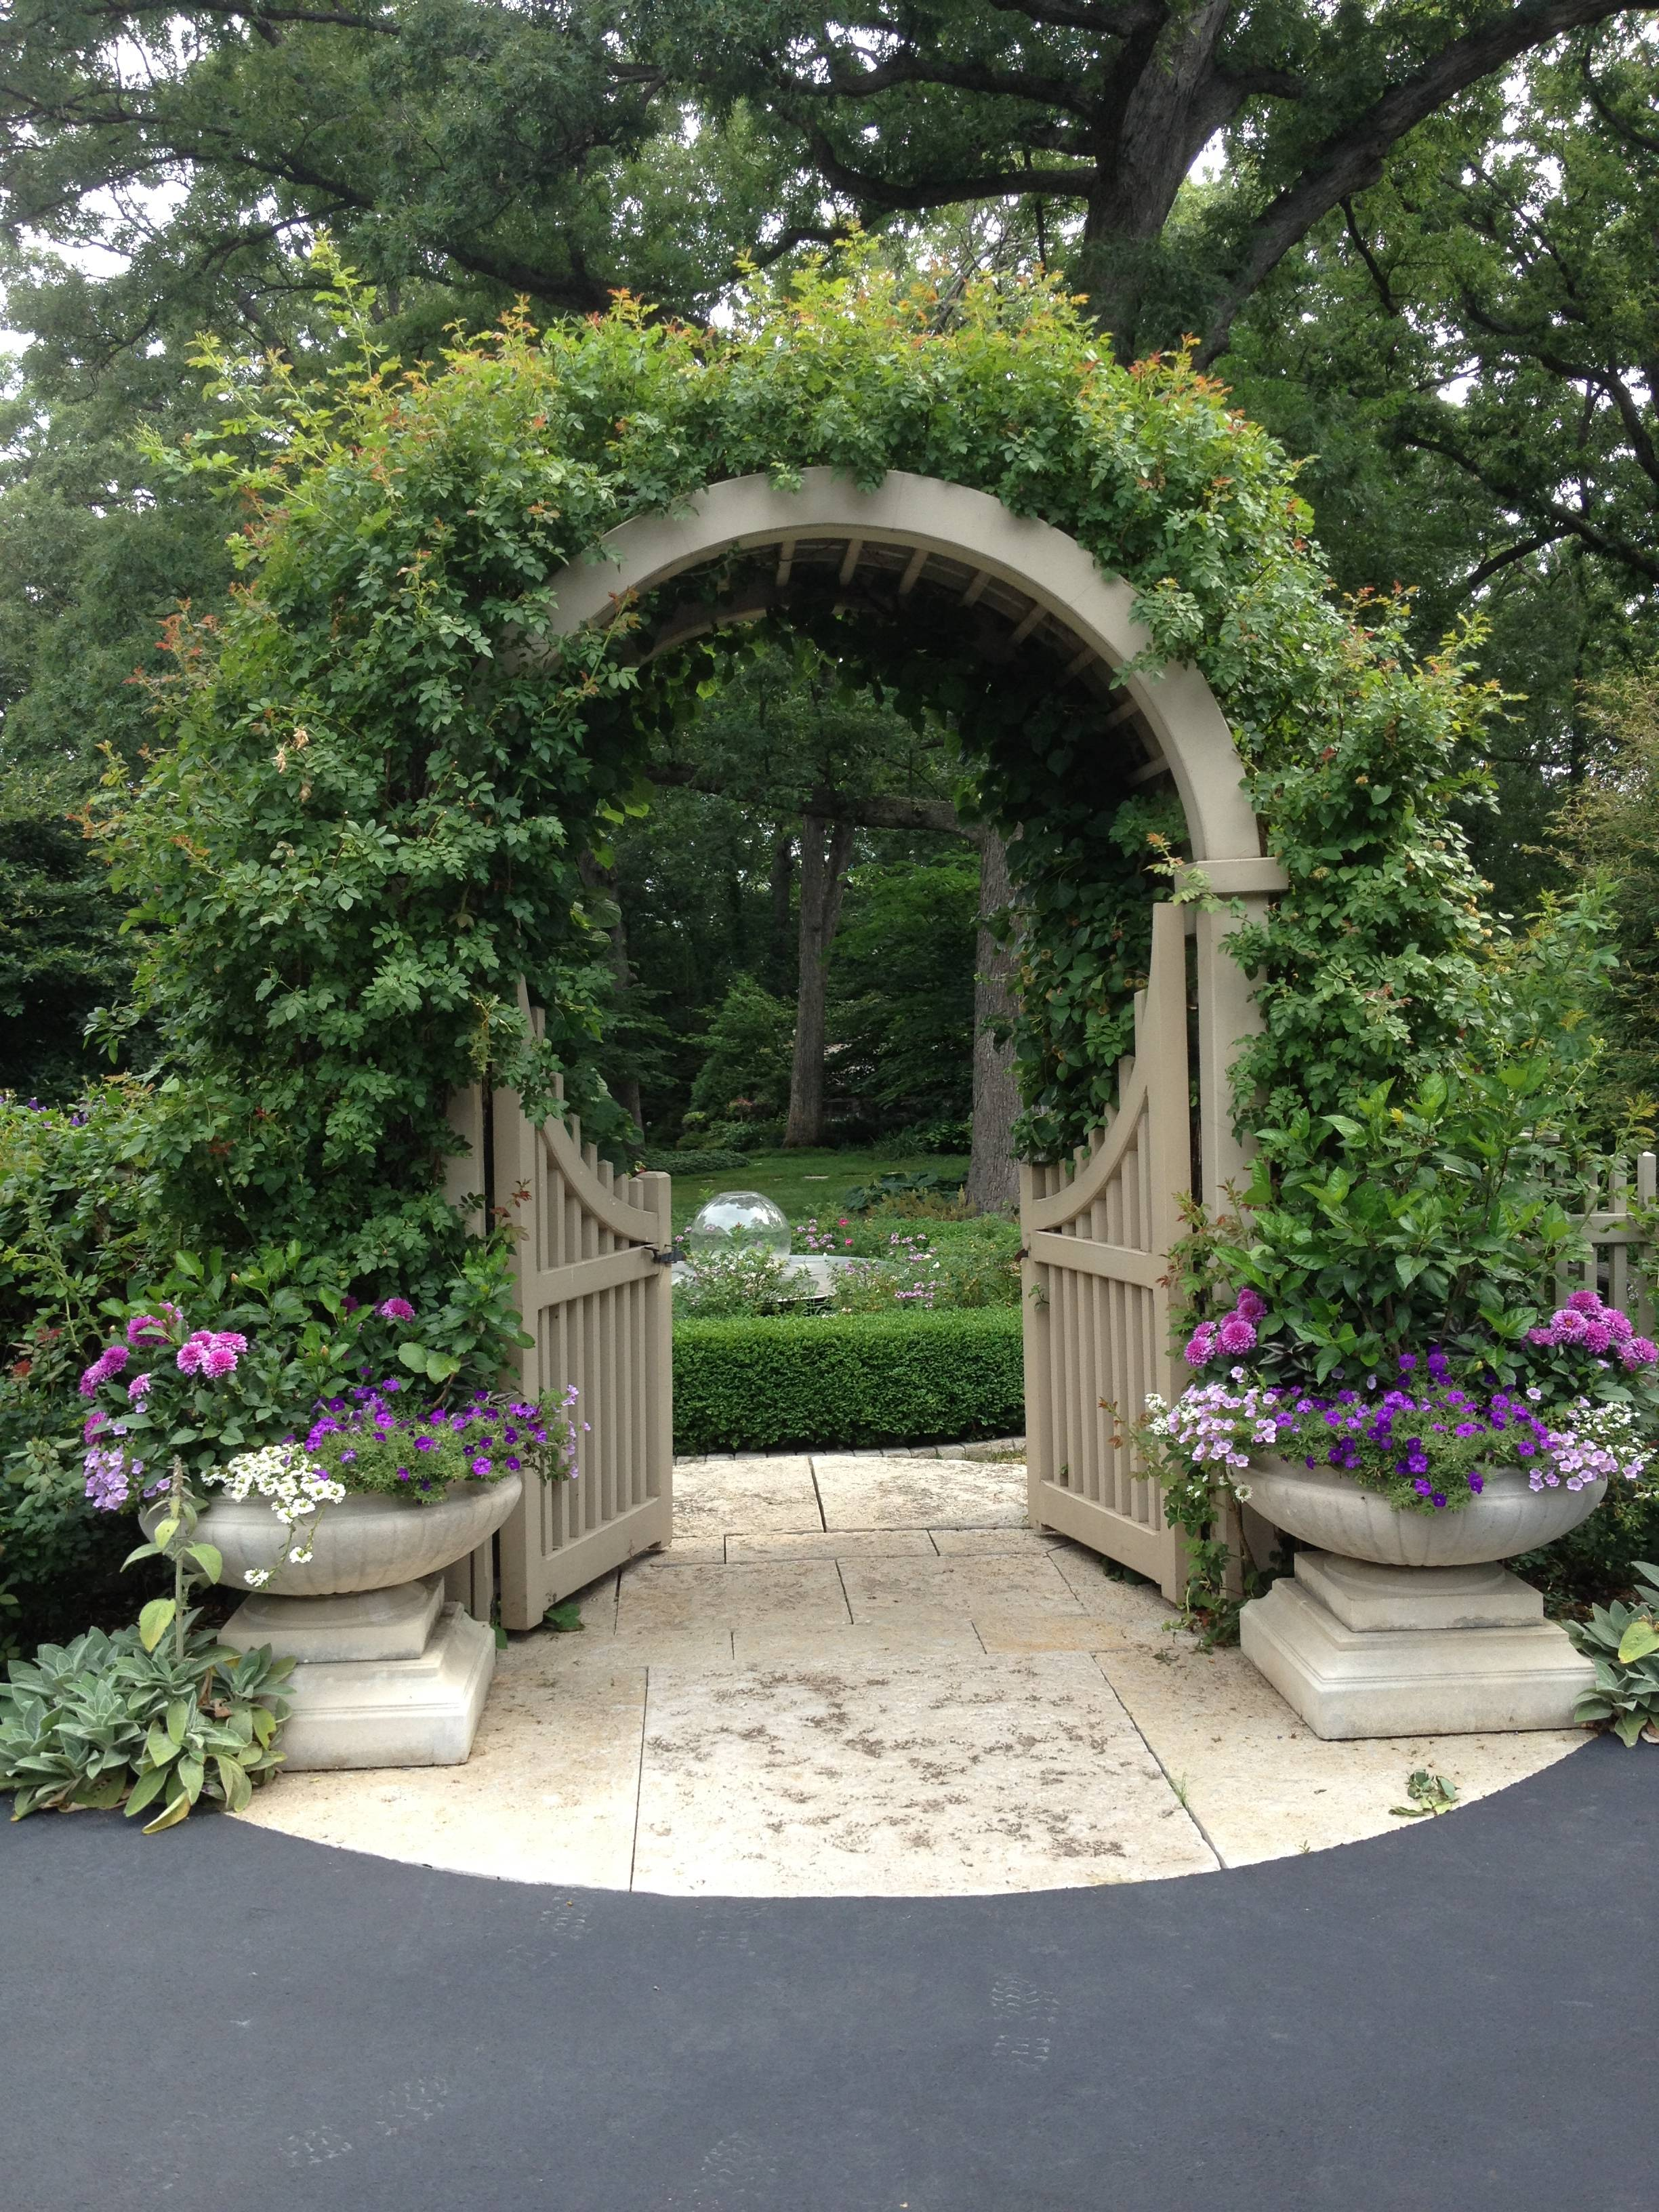 See beautiful gardens at six locations at the St. Charles garden walk June 21.